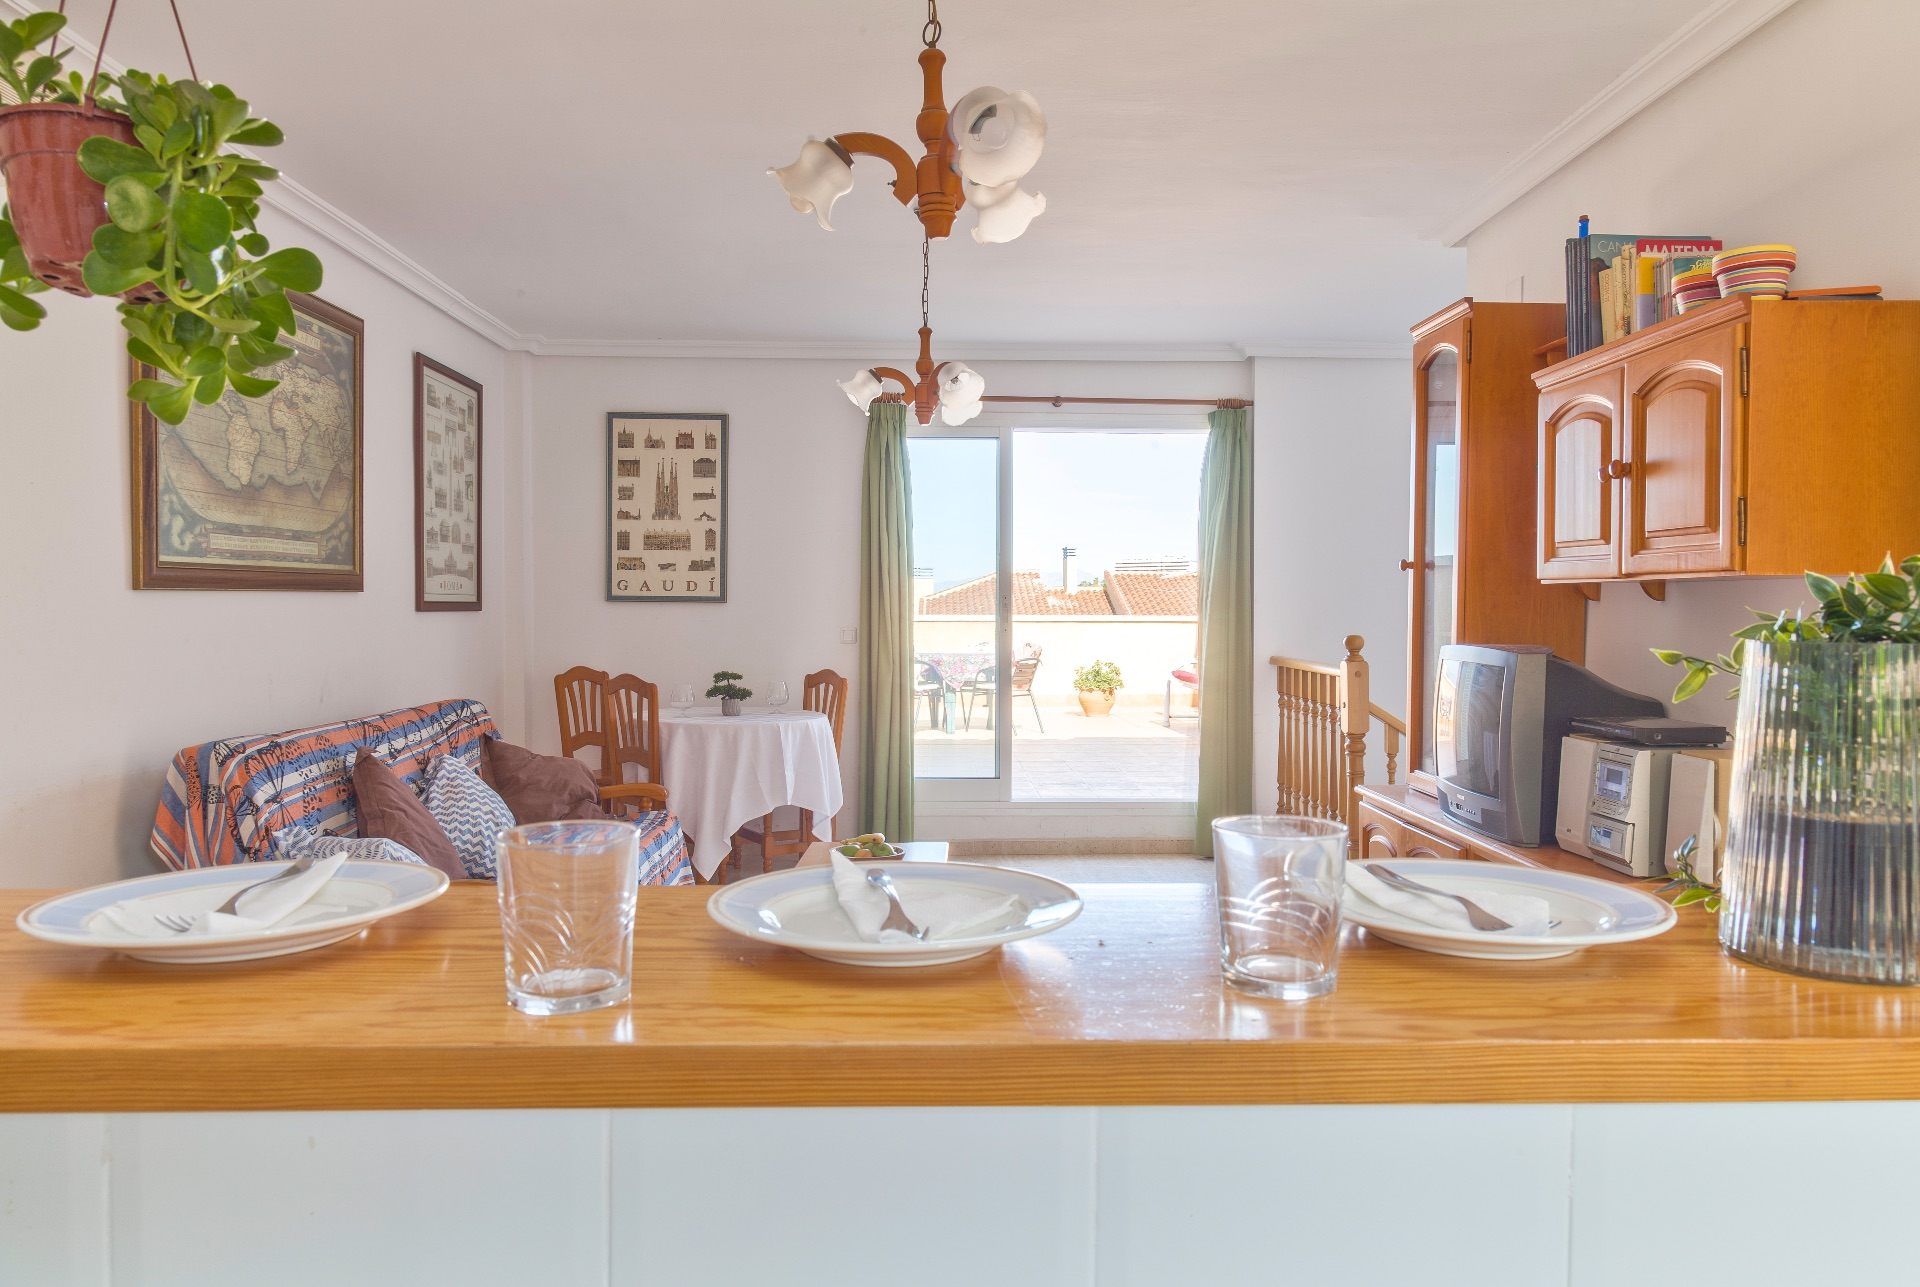 Duplex in Gran Alacant, NOVAMAR GRAN ALACANT, for sale